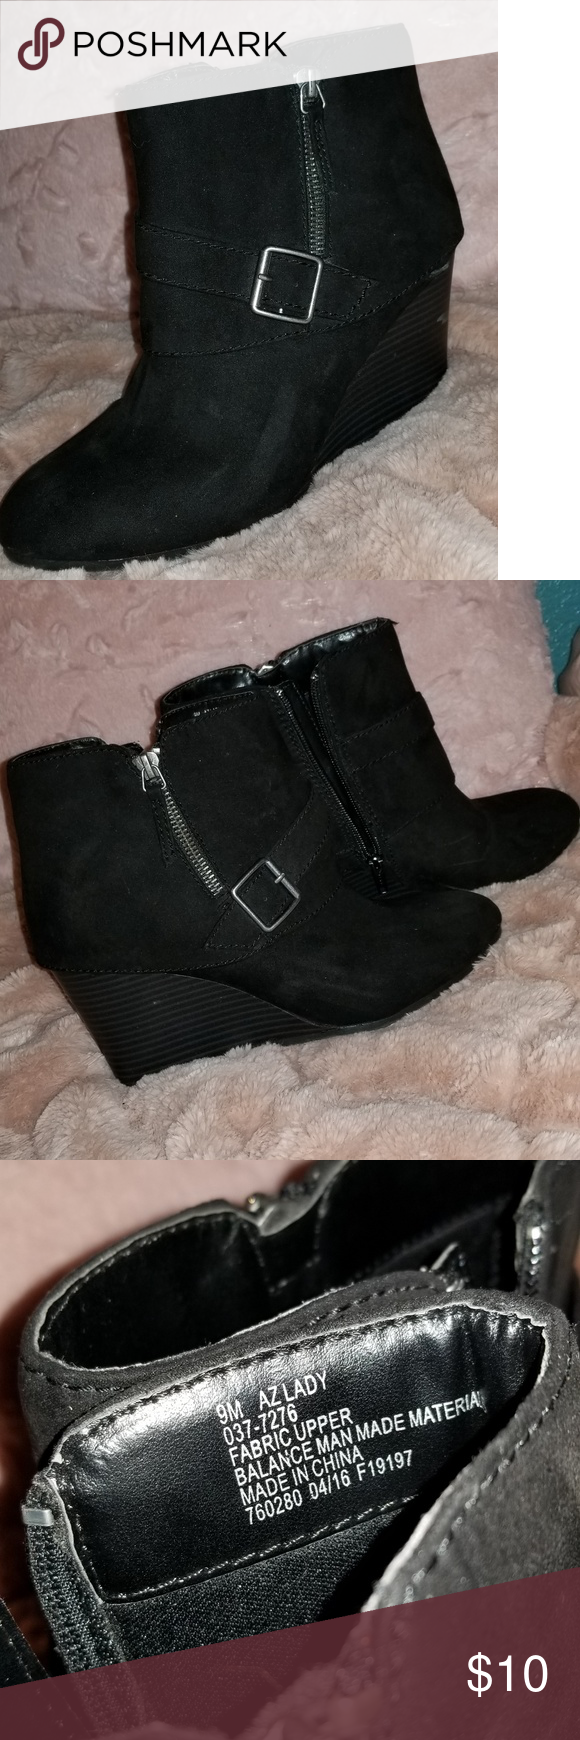 ce7c1d1dabe Ankle Black Wedge Booties Used, there is some mild scuffing on sides but  not noticeable. Worn a few times, comfy. Arizona Jean Company Shoes Ankle  Boots & ...